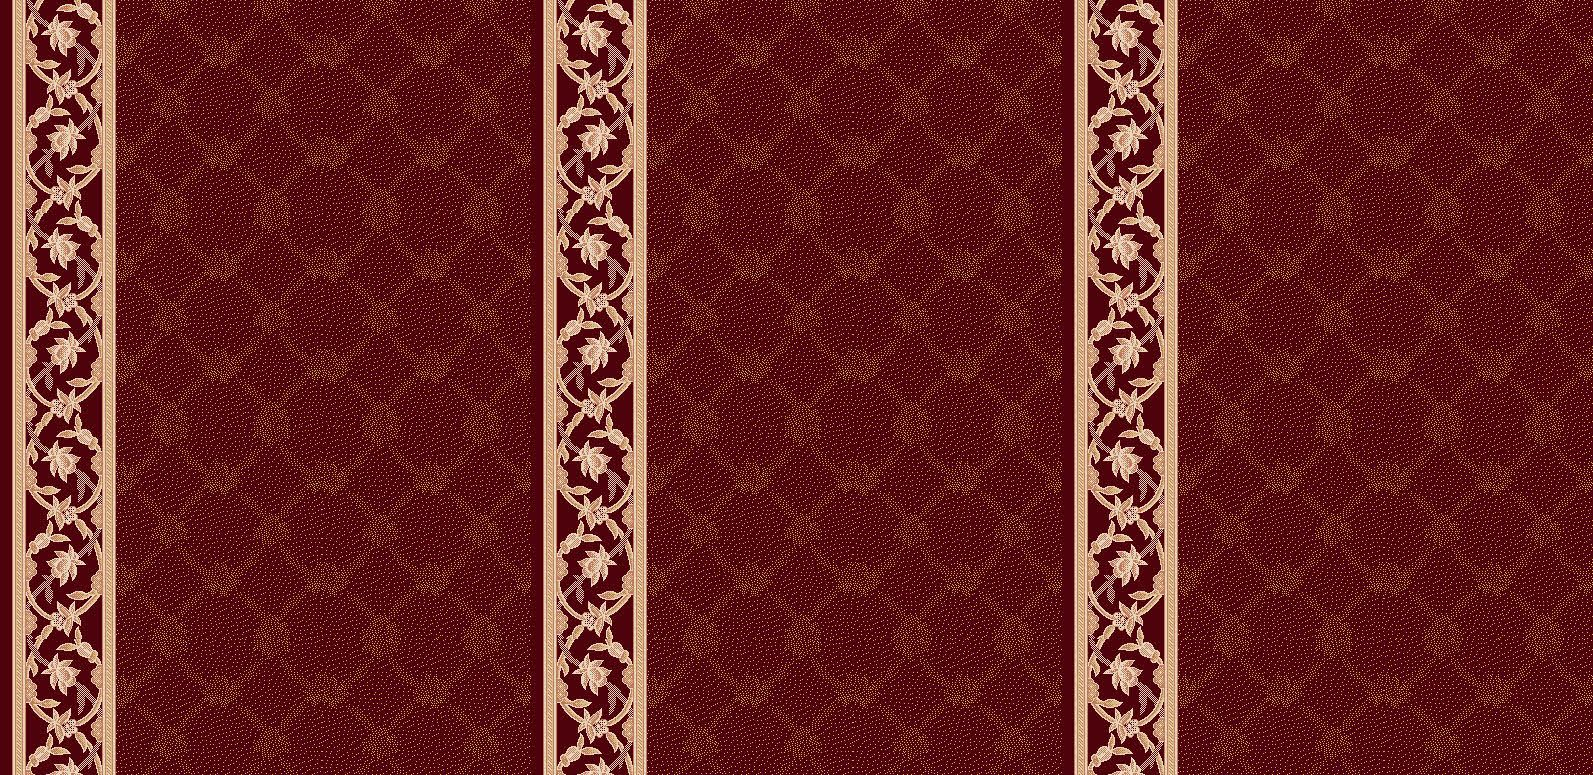 Musalla Carpet Masjid Carpet in USA | Musalla Masjid ...